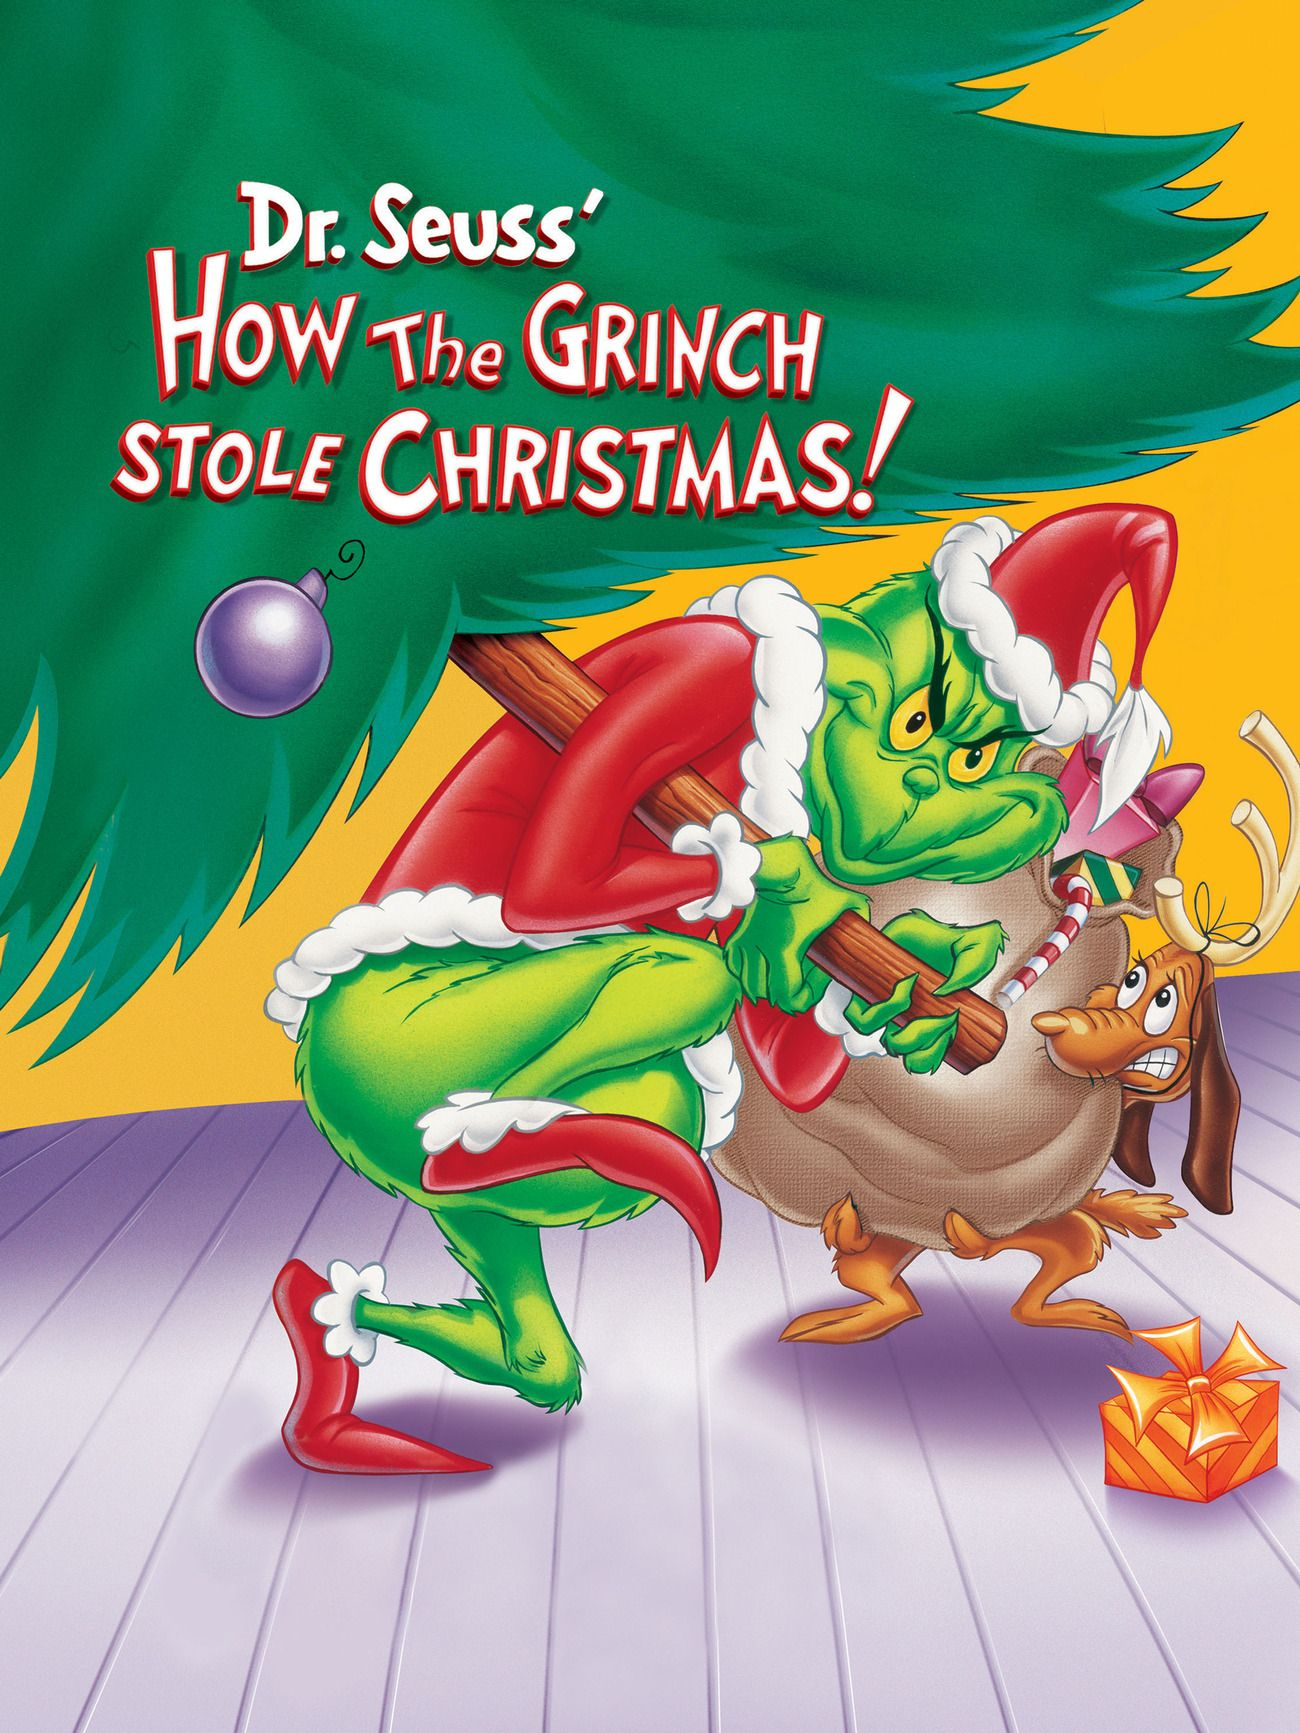 How The Grinch Stole Christmas The Grinch Movie Classic Christmas Movies Grinch Stole Christmas